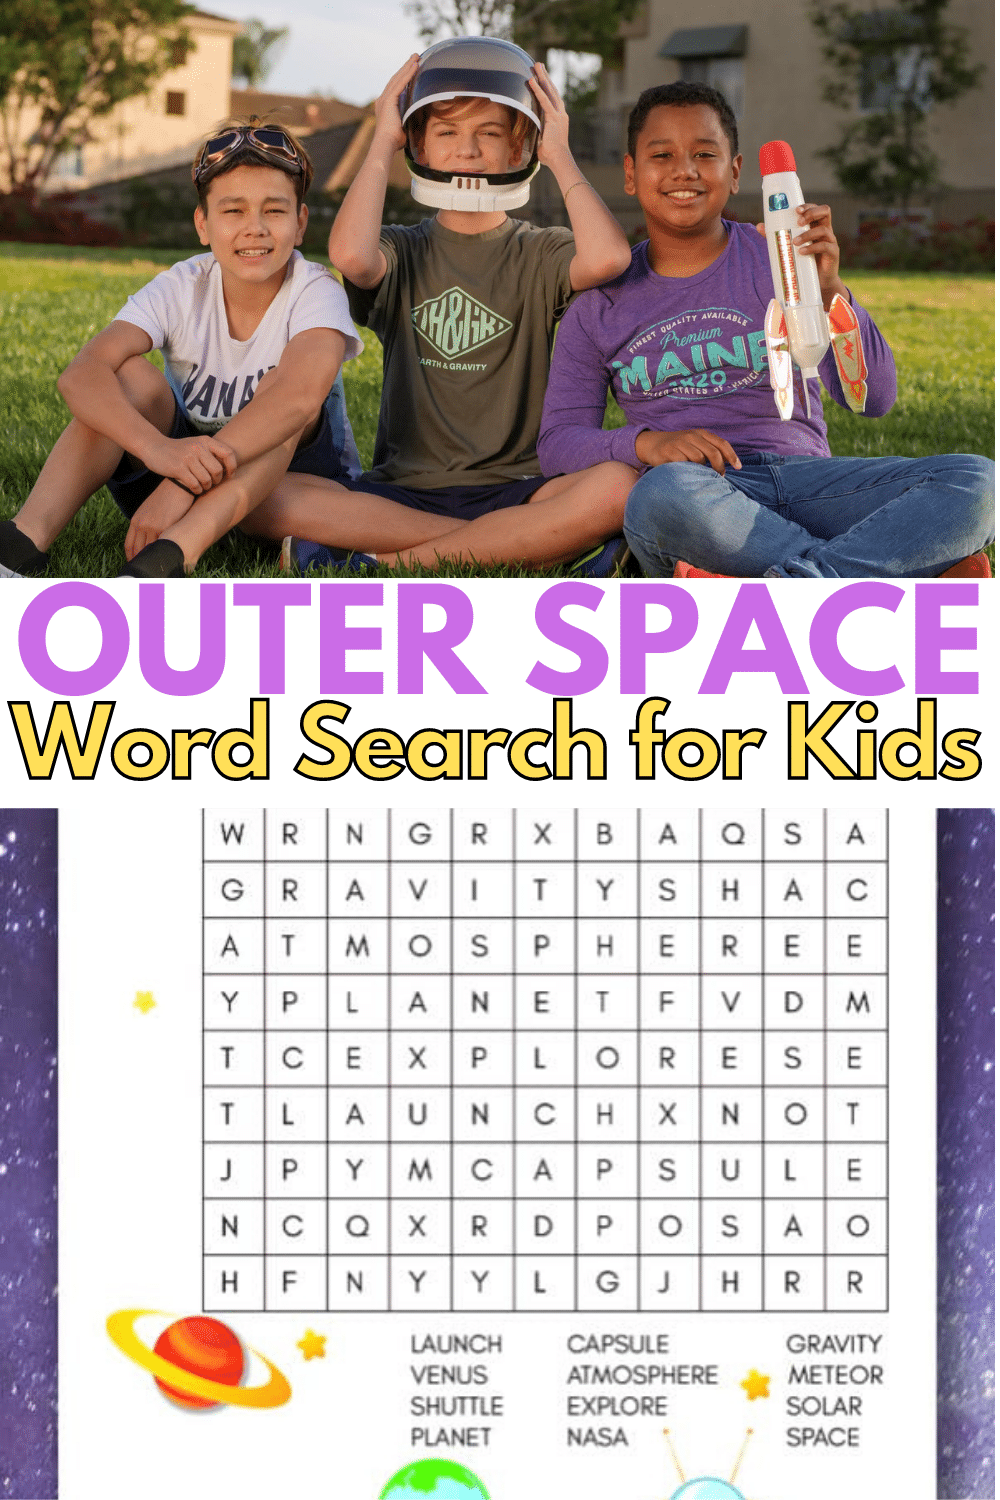 This printable outer space word search for kids is a fun and educational way for children to learn words about space and our galaxy. #outerspace #wordsearch #printables via @wondermomwannab